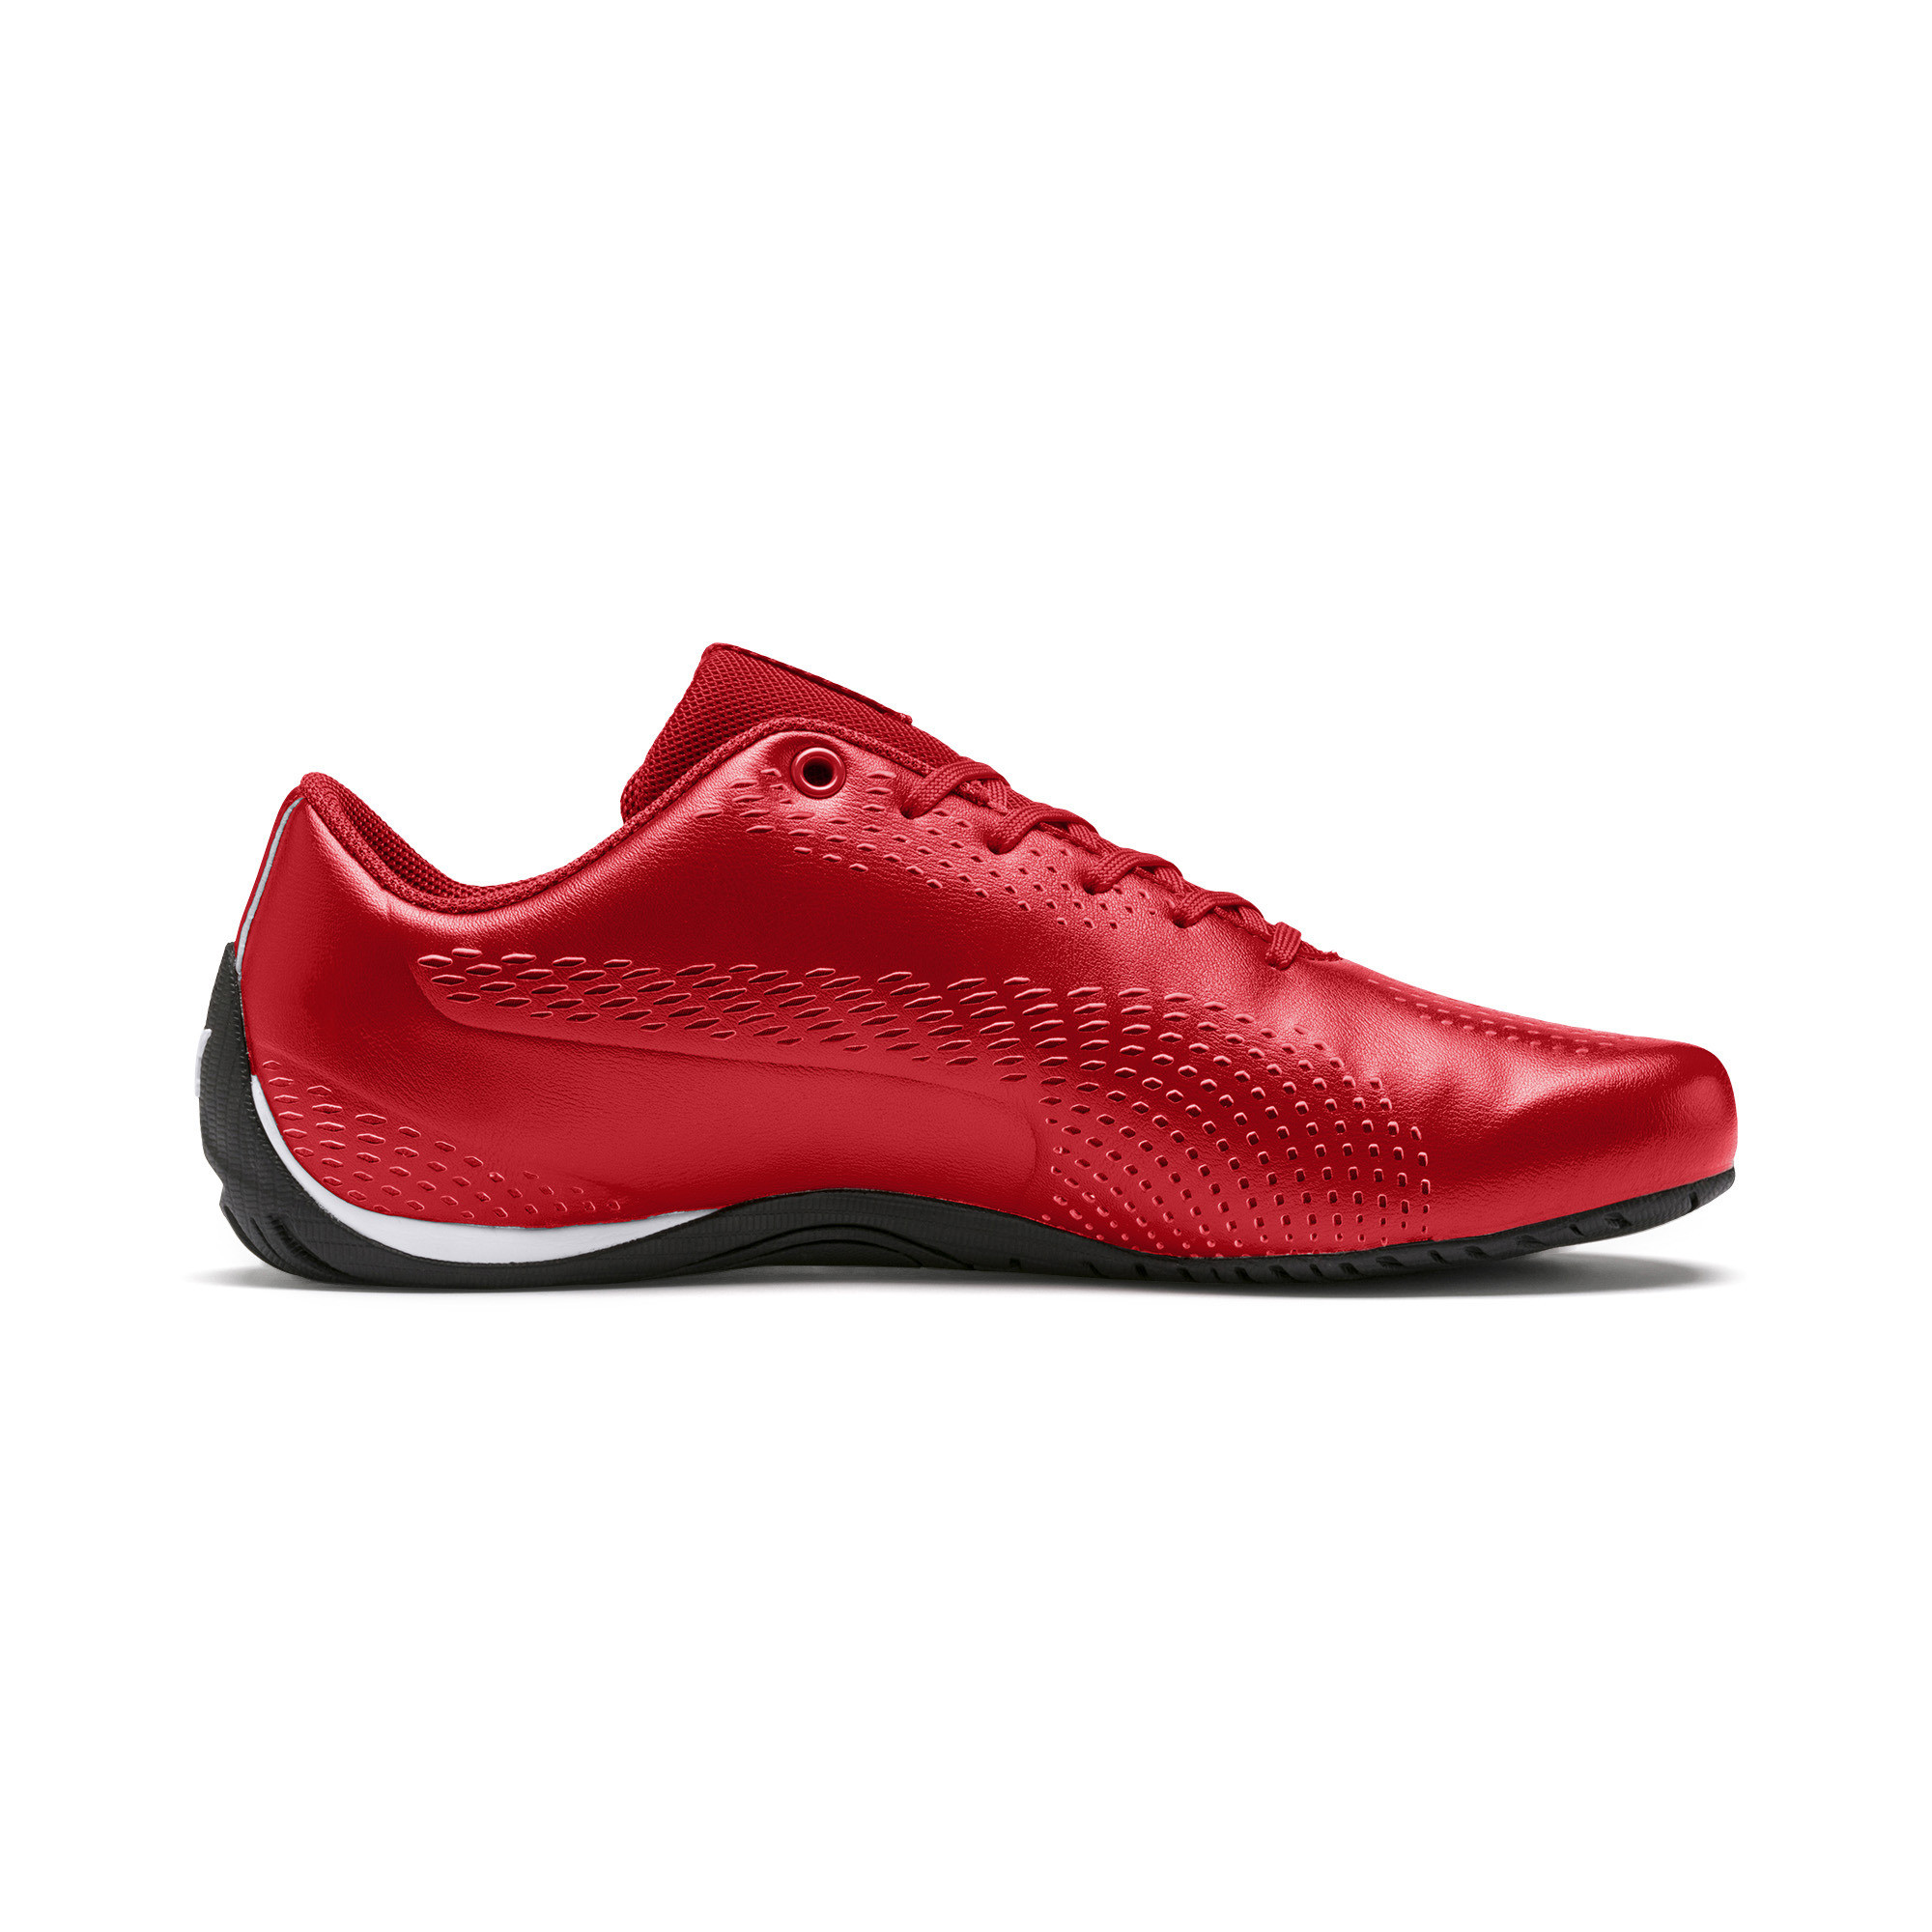 PUMA-Men-039-s-Scuderia-Ferrari-Drift-Cat-5-Ultra-II-Shoes thumbnail 14